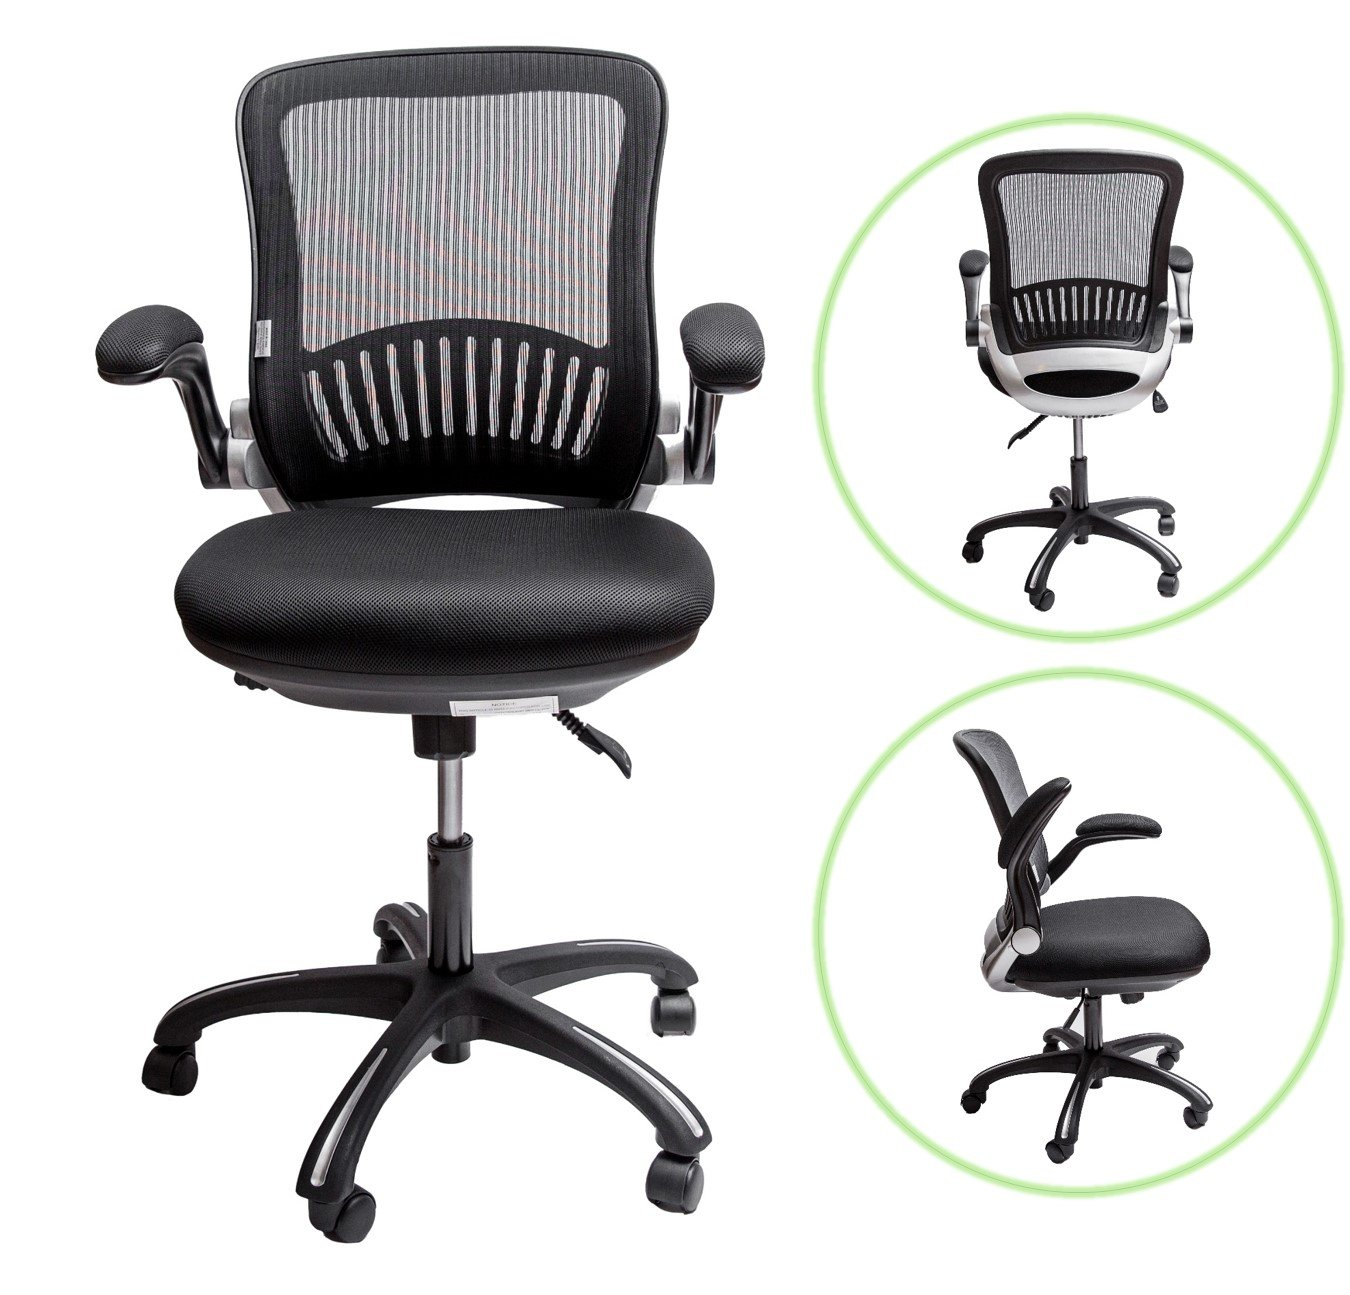 """Sleekform Ergonomic Office Desk Chair   Mid-back Swivel Task Chair with Lumbar Support   Height Adjustable Seat & Arms   Breathable Mesh Back   2-1 Synchro Tilt Control   4.3"""" Soft Memory Foam Cushion"""